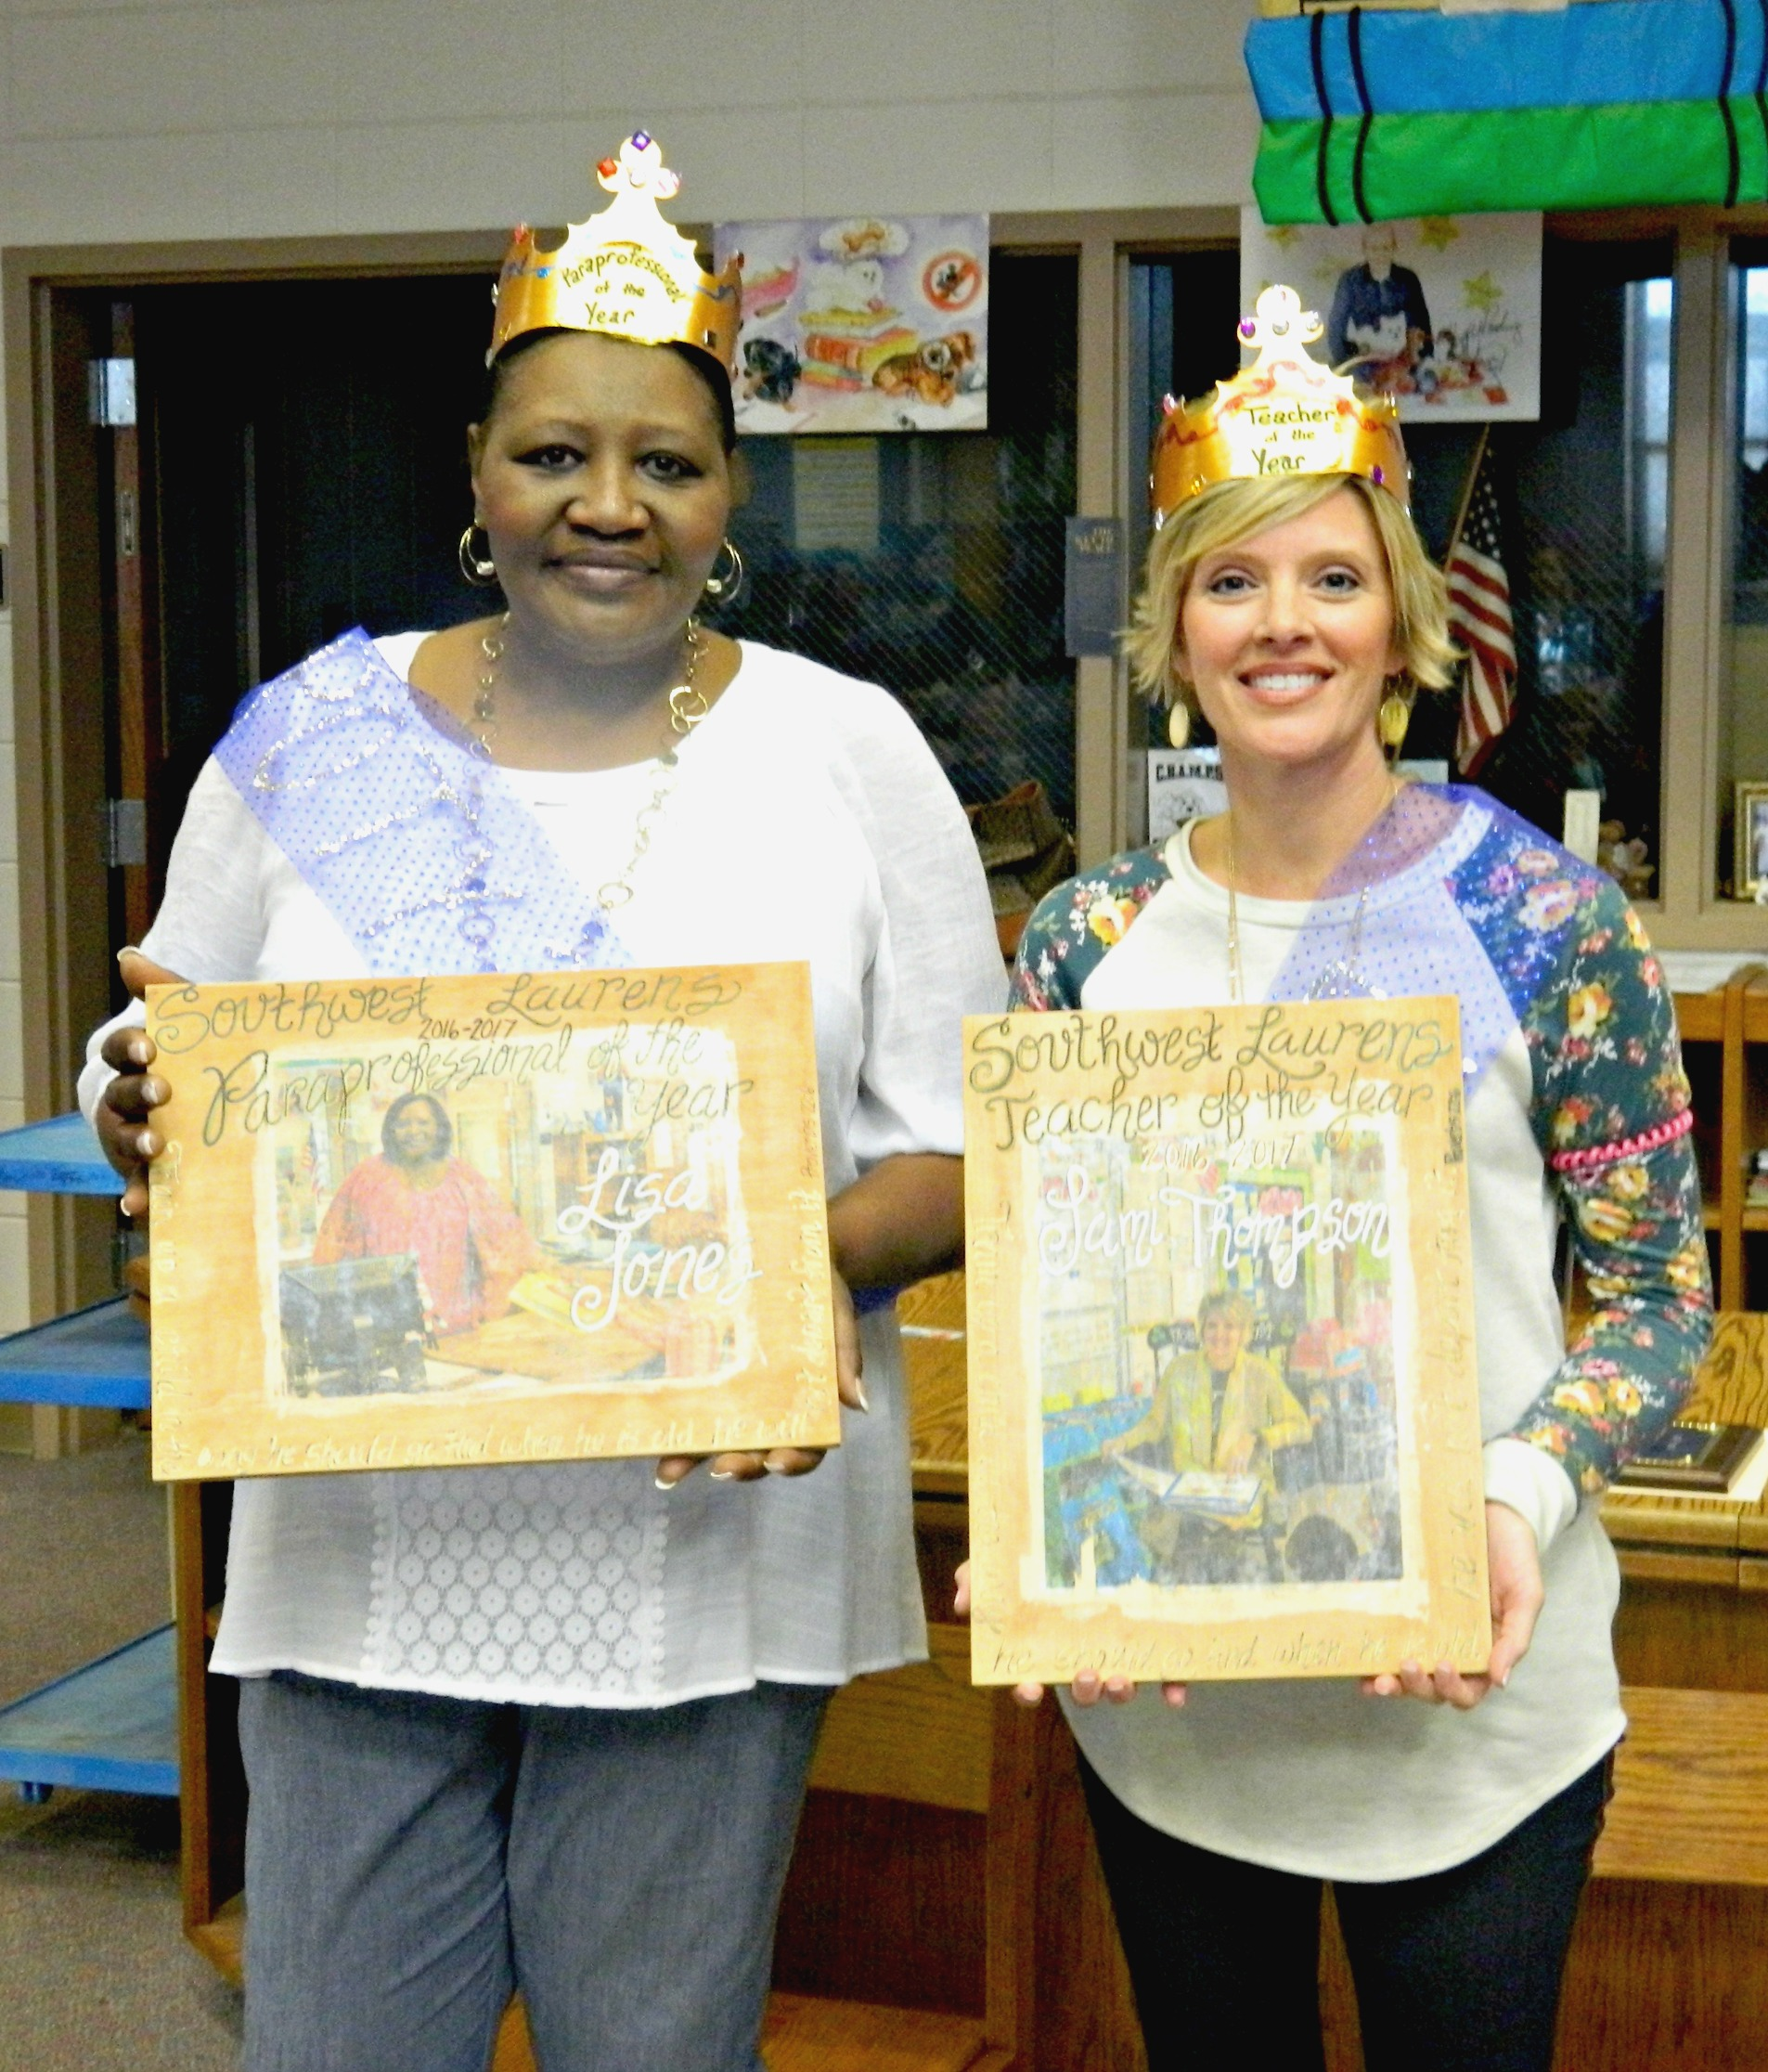 2016-2017 SWLE Teacher and Paraprofessional of the Year.  Southwest Laurens Elementary held a reception to honor their Teacher of the Year (Jamie Thompson) and Paraprofessional of the Year (Lisa Jones).  Both honorees are highly committed and respected among their peers.  They are dedicated to their profession and work diligently to help all students thrive.  Pictured left to right: Lisa Jones and Jamie Thompson